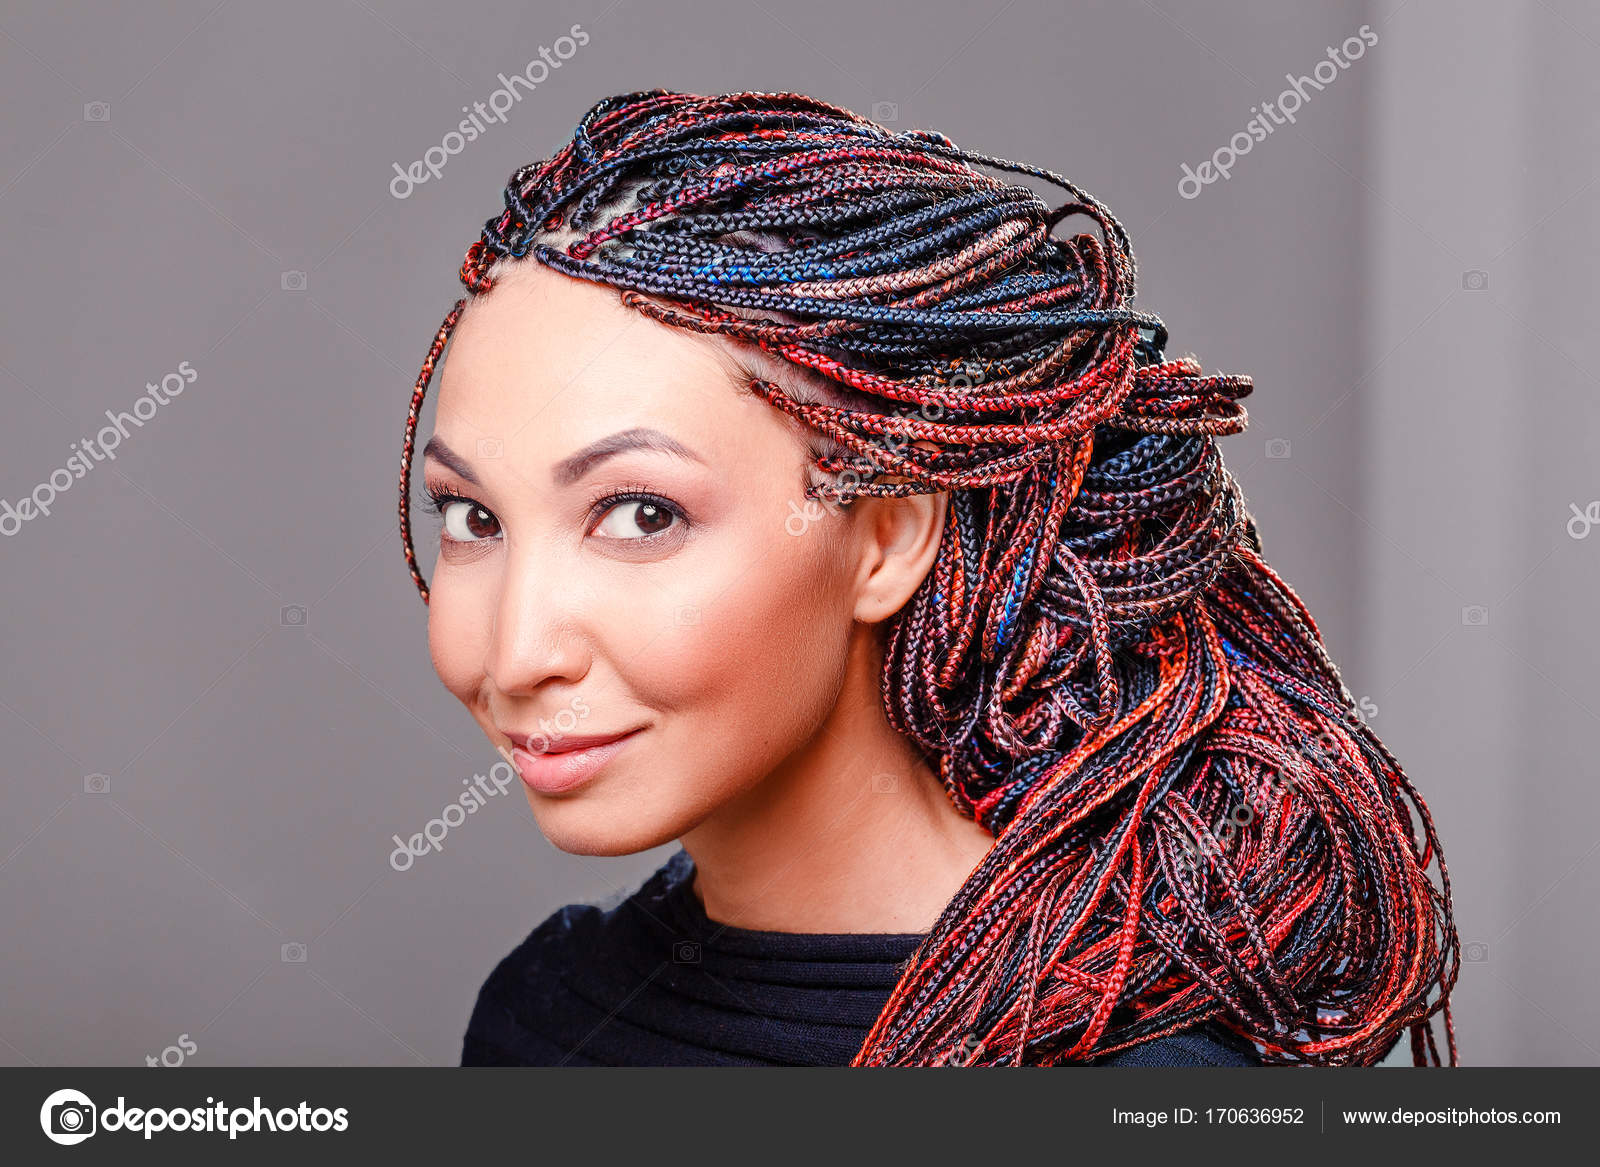 Women Hairstyle with colorful hair extensions braided in thin ...